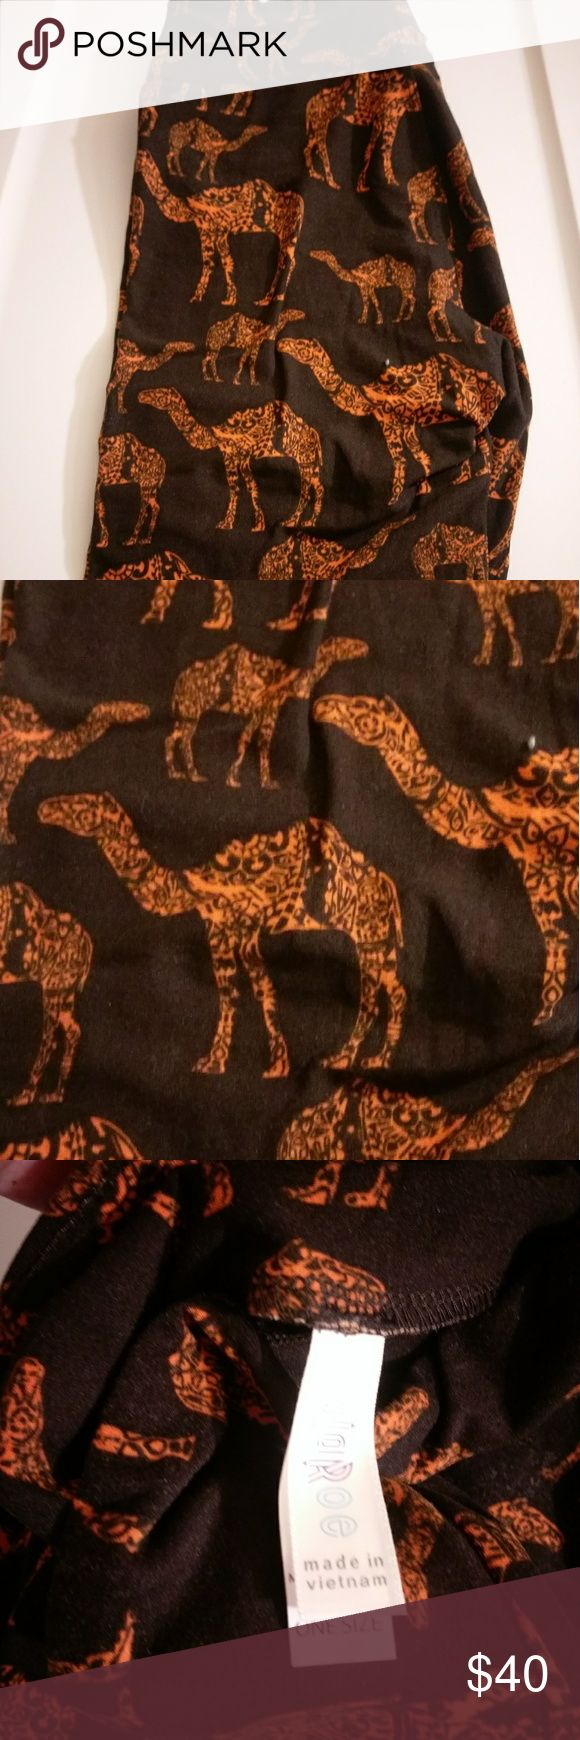 BNWT OS LLR CAMEL LEGGINGS WITH BLACK BACKGROUND! Brand new - never worn or washed. These black OS leggings have orange mosiac camels patterned throughout. A very fun design! I am liquidating my entire collection out of necessity, so I'm VERY motivated to sell! Make me an offer!!! LuLaRoe Pants Leggings